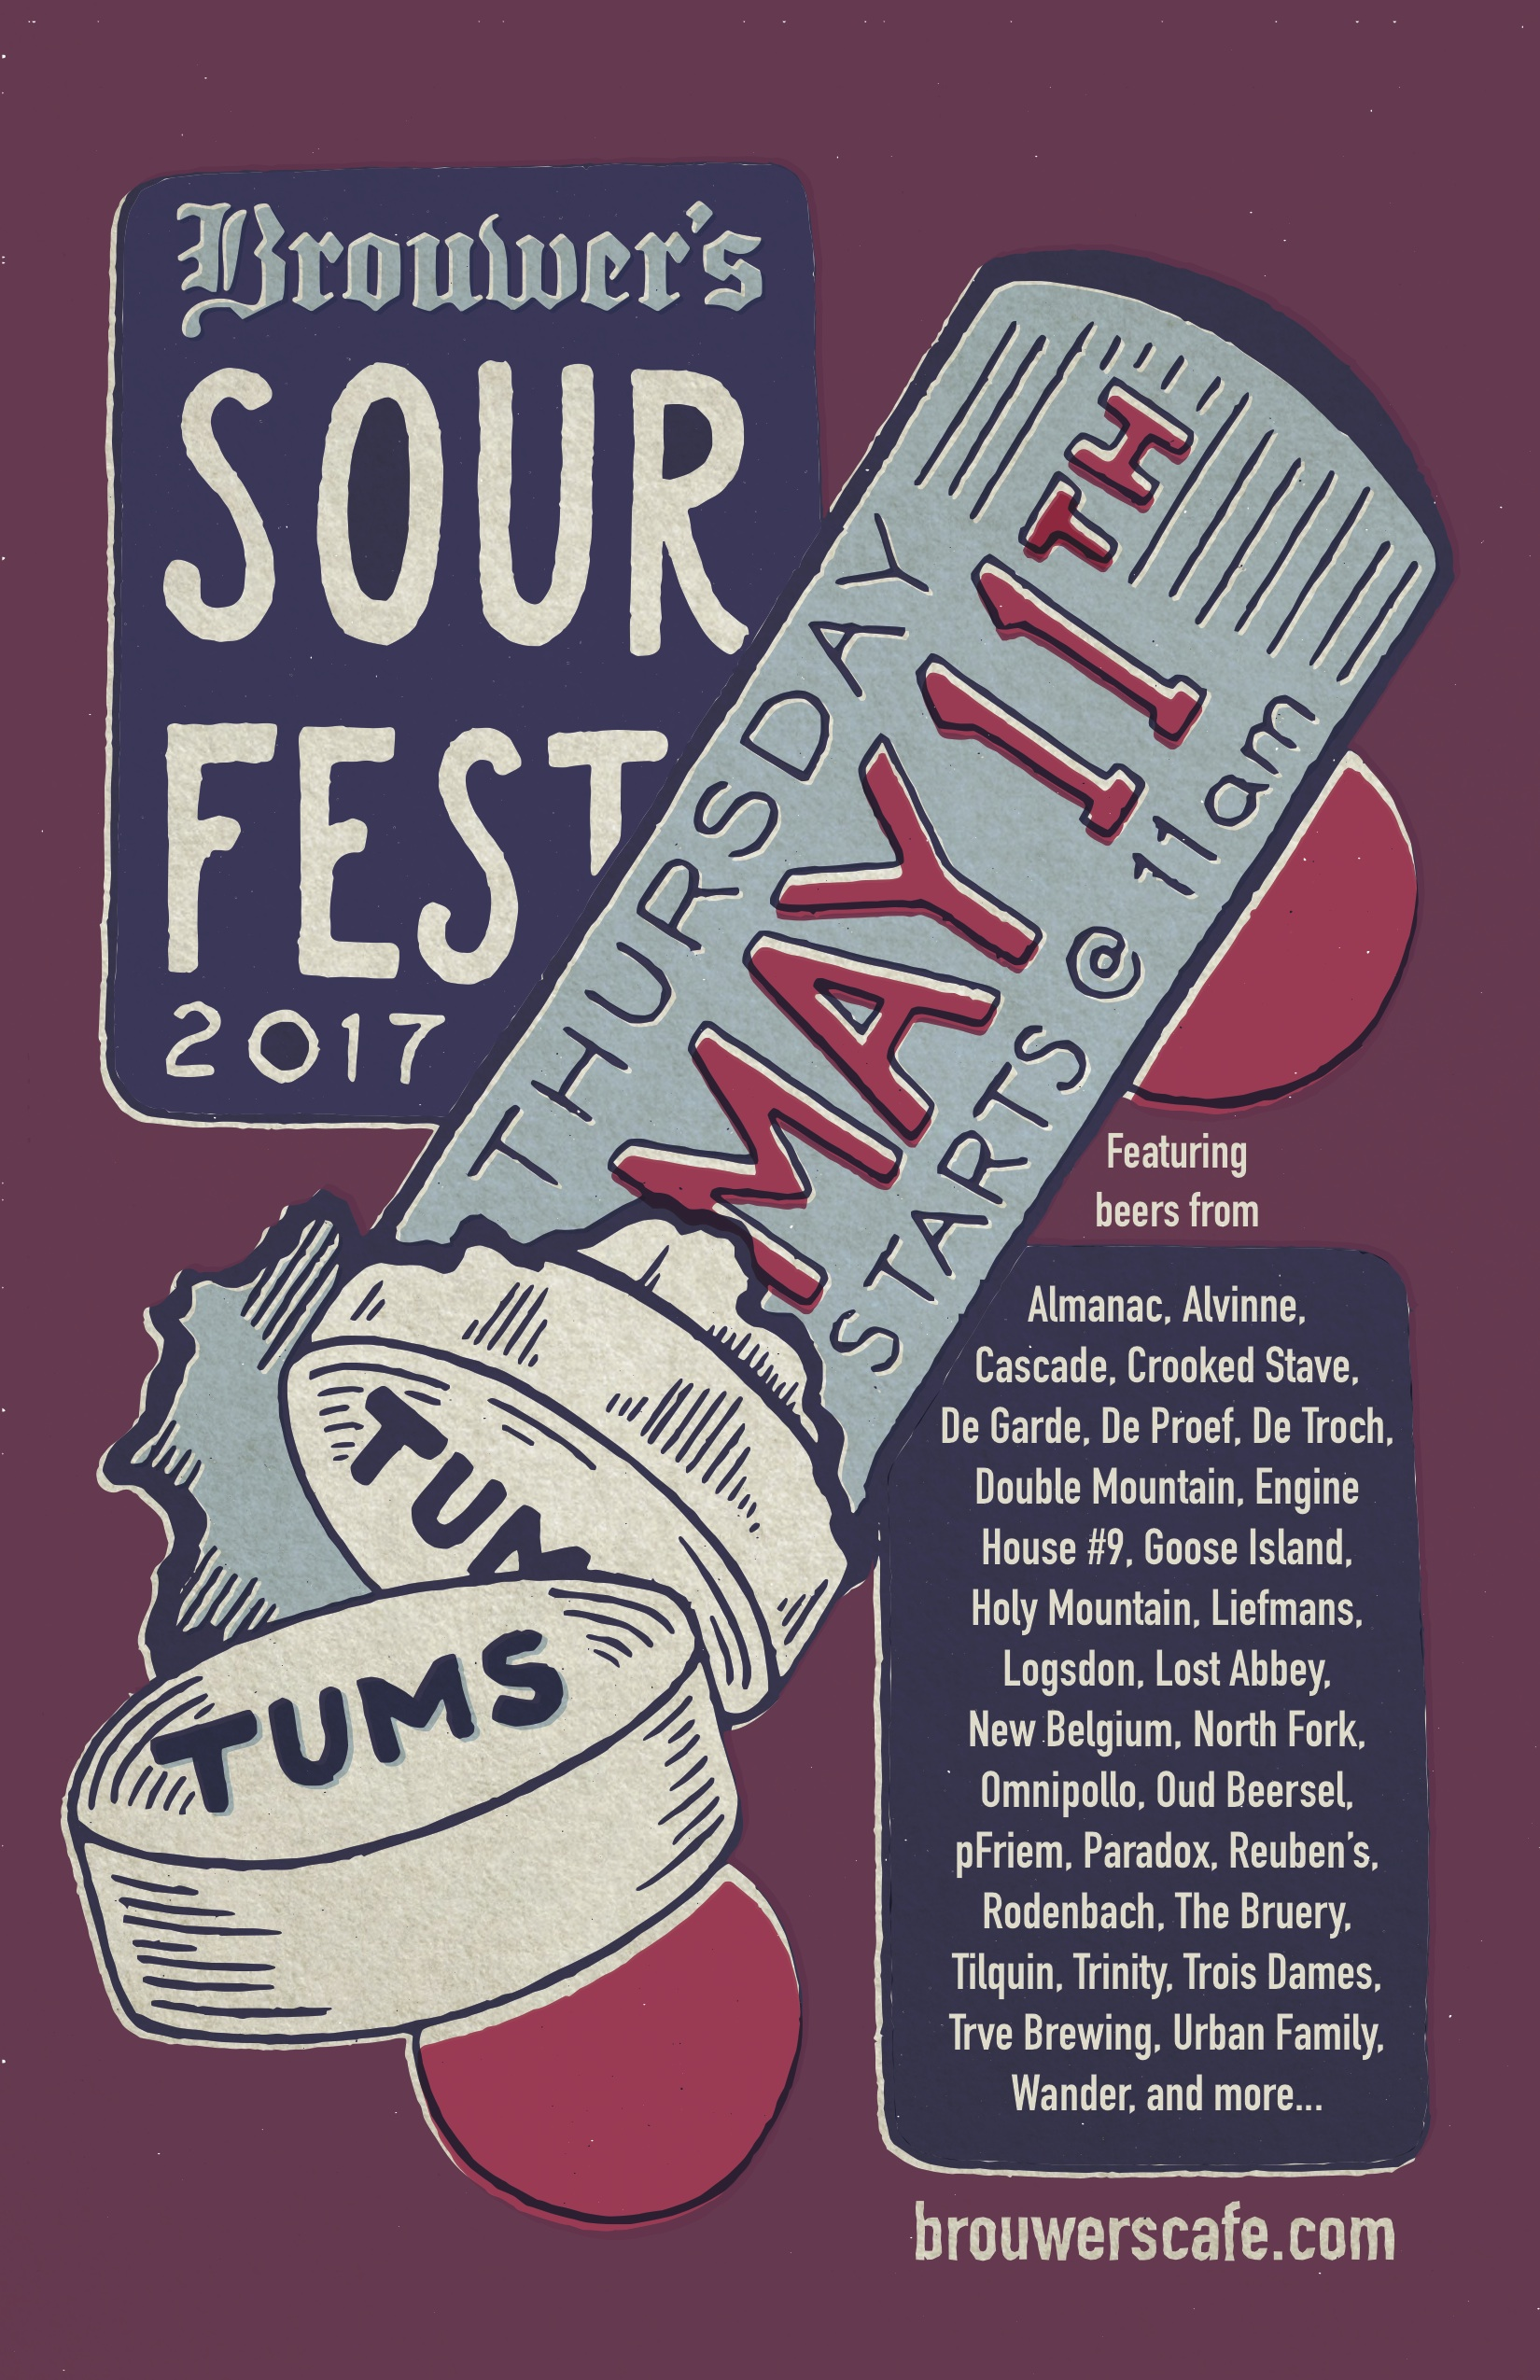 Thursday, May 11th @11am Sour Fest